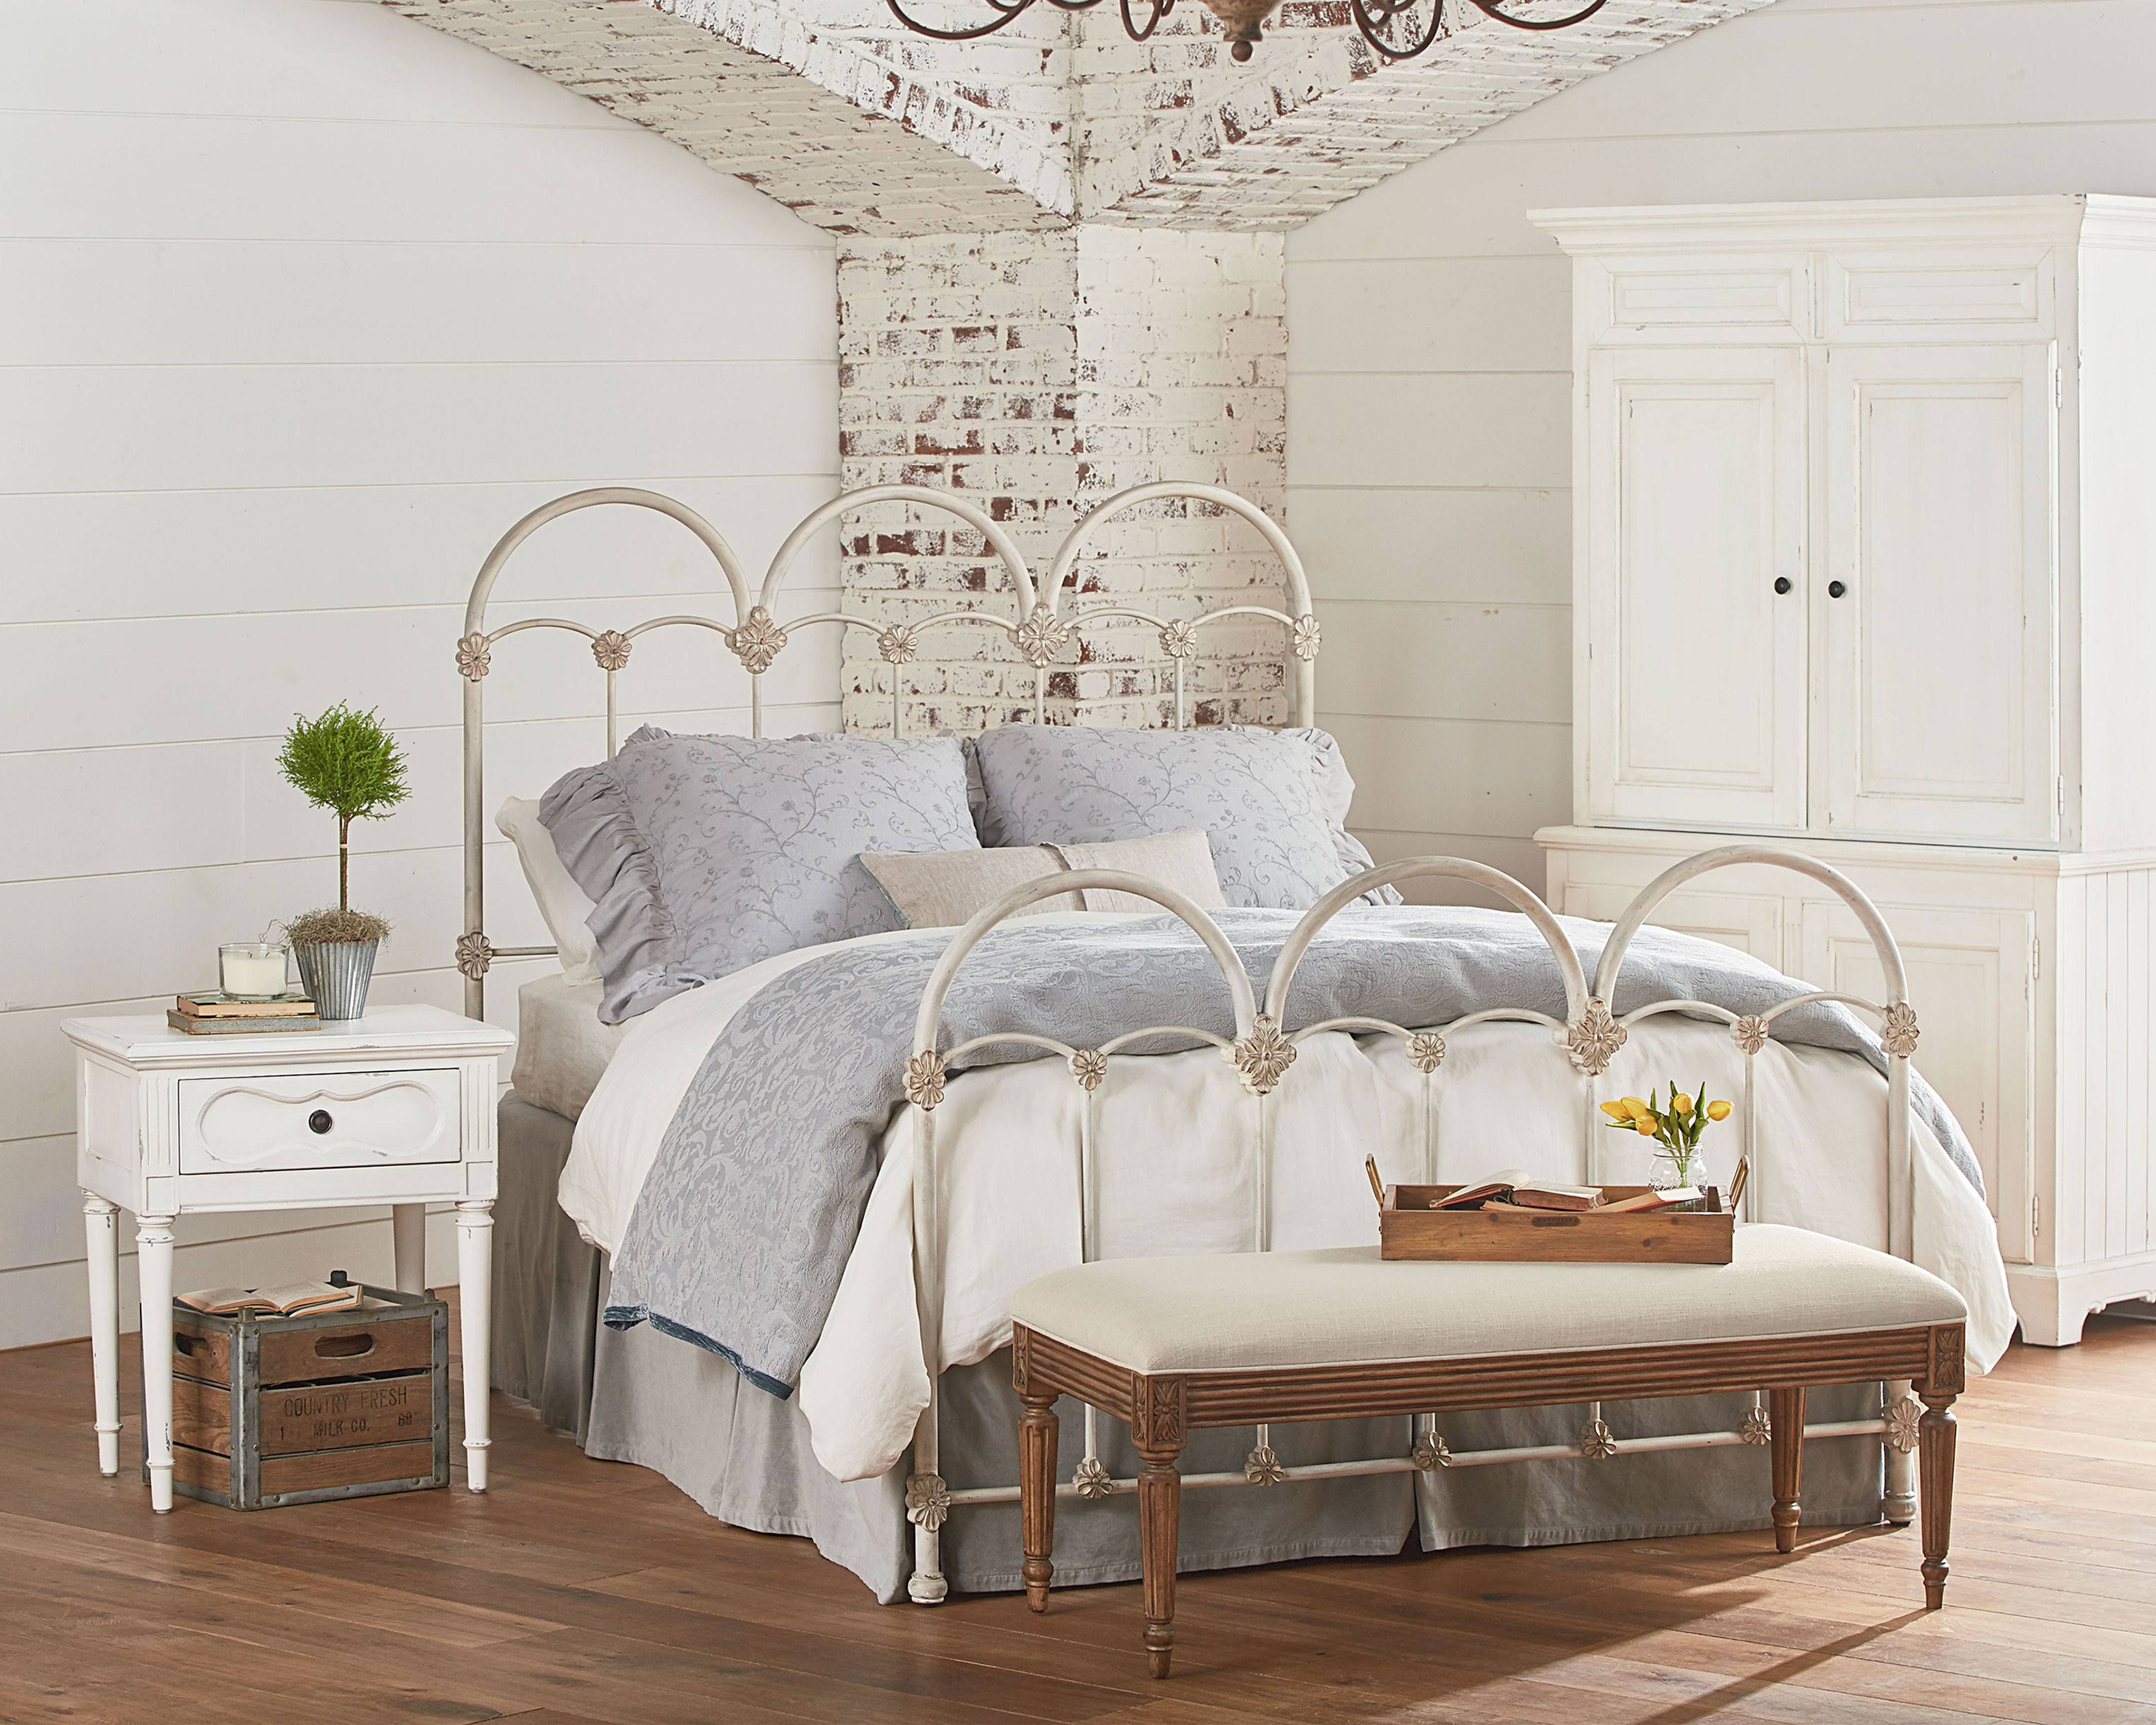 French Inspired Bedroom With Rosette Iron Bed Magnolia Home